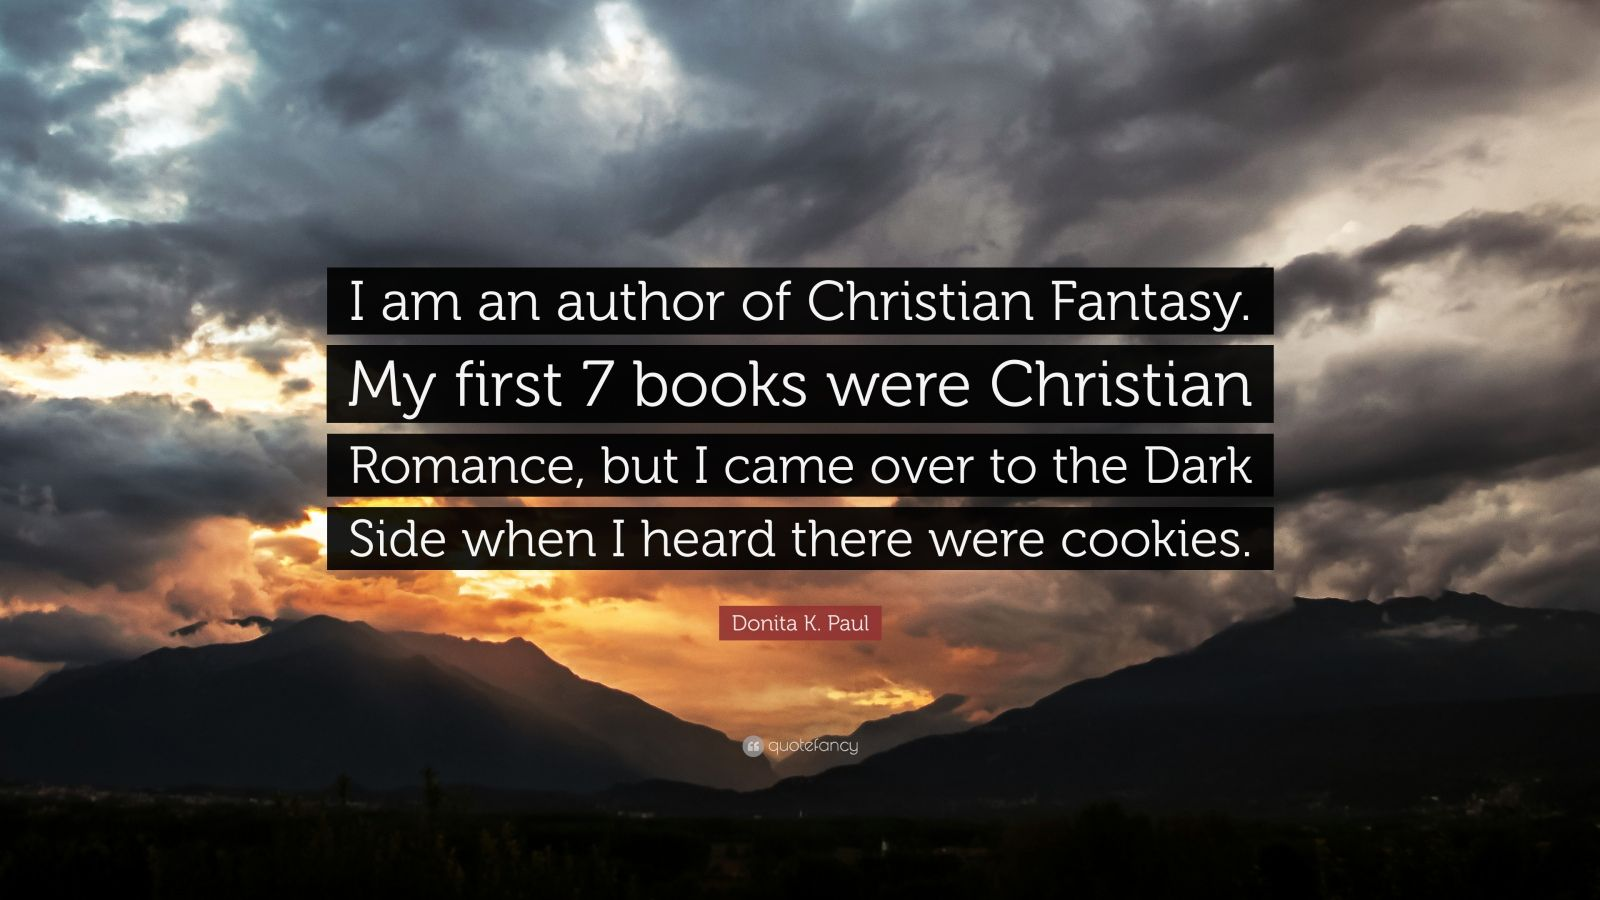 """Donita K. Paul Quote: """"I am an author of Christian Fantasy. My first 7 books were Christian Romance, but I came over to the Dark Side when I heard there were cookies."""""""